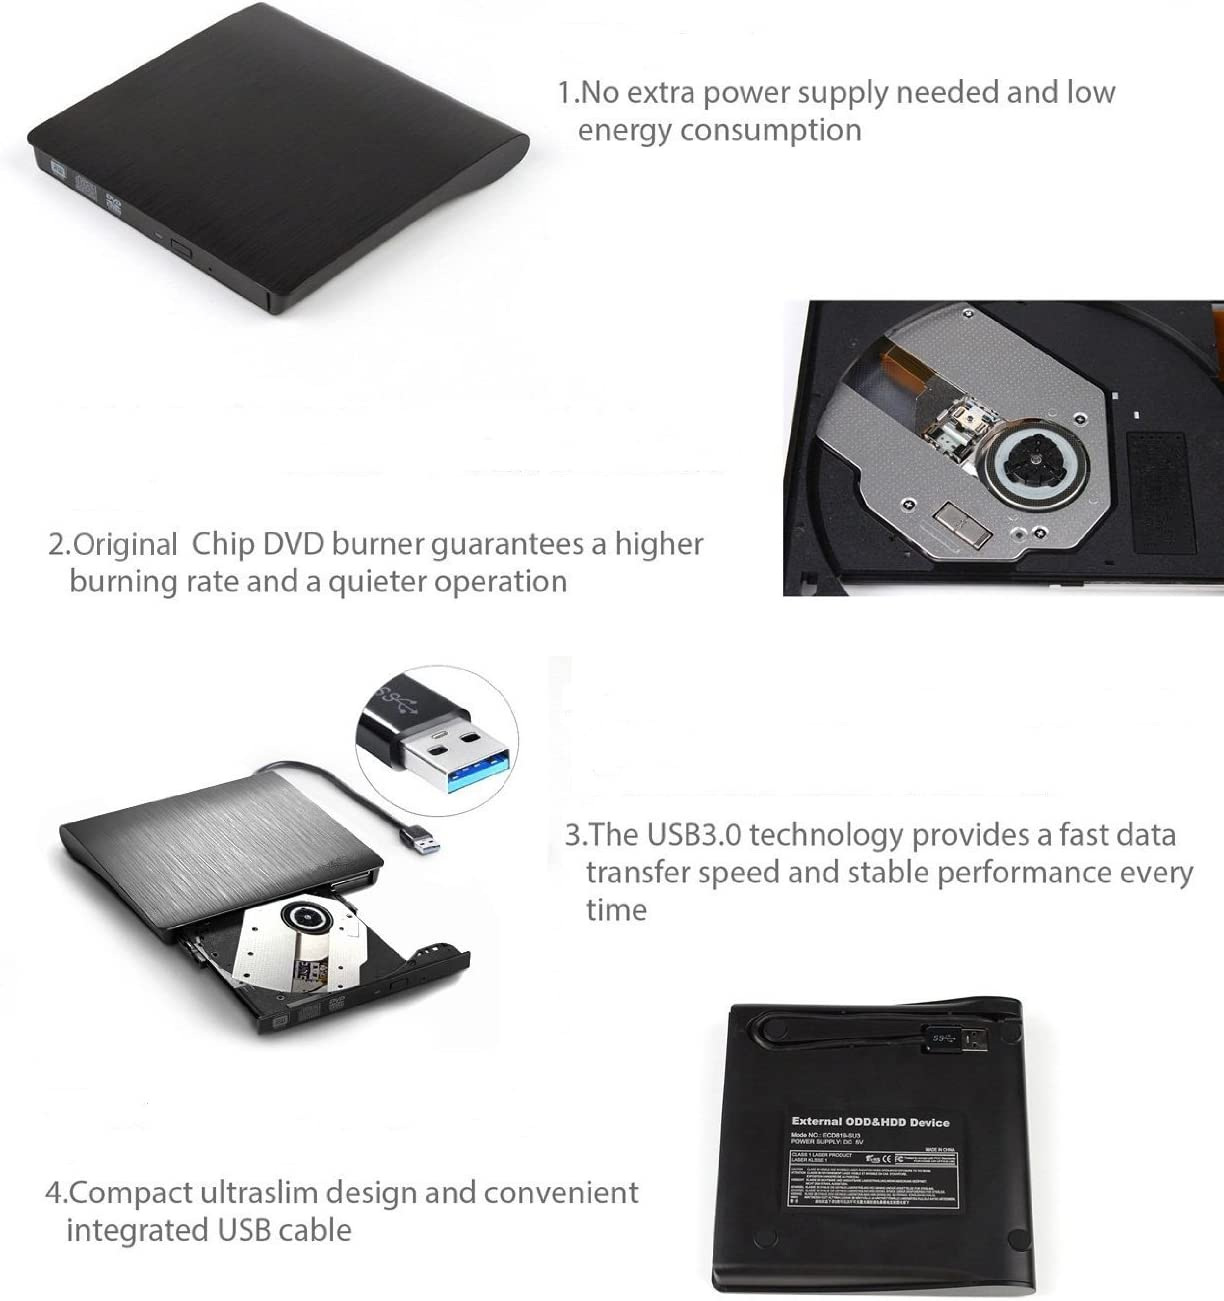 Brymily USB3.0 Slim CD//DVD-RW Burner Player Superdrive External Optical Drive for Laptop Desktops-Black